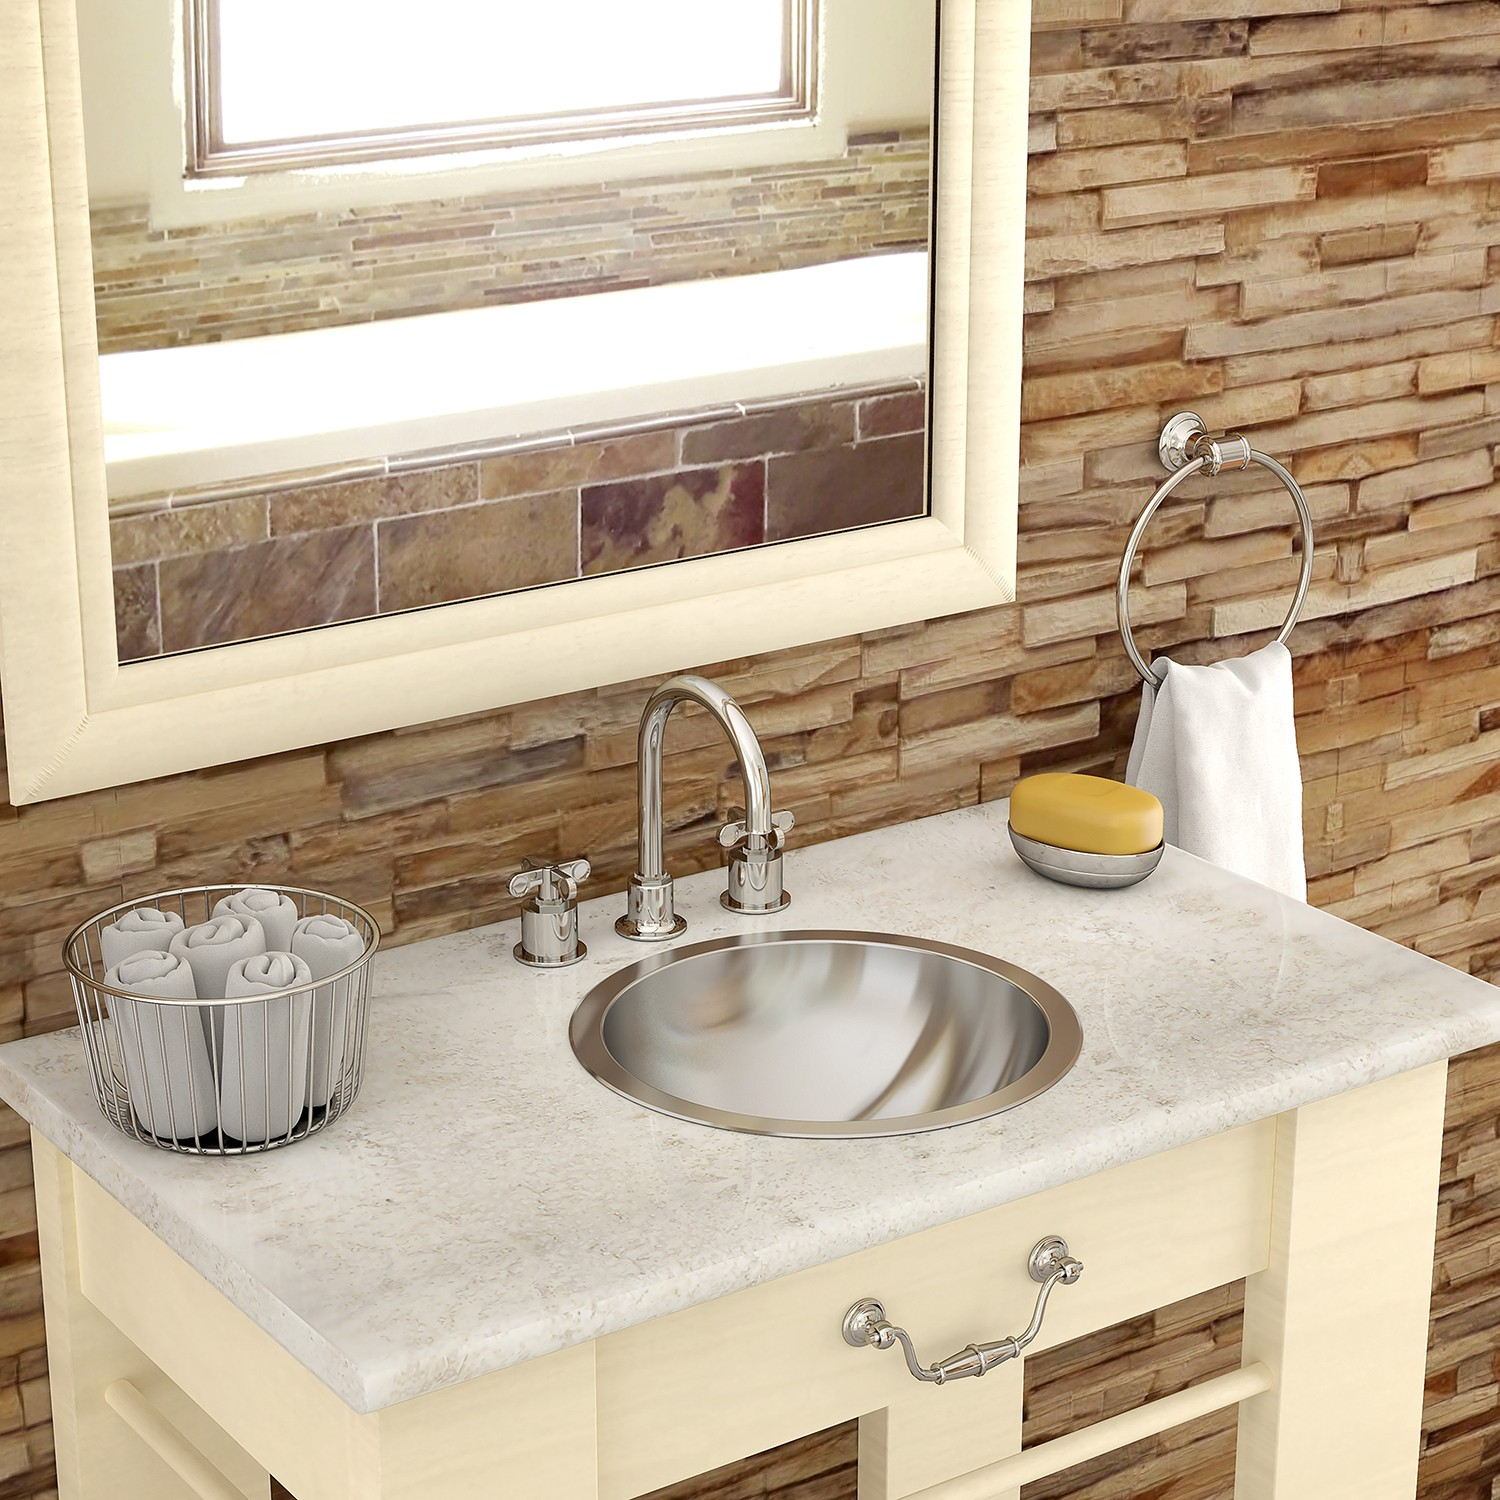 Decolav Teanna 1201 Simply Stainless Collection Round Undermount Steel Bathroom Sink